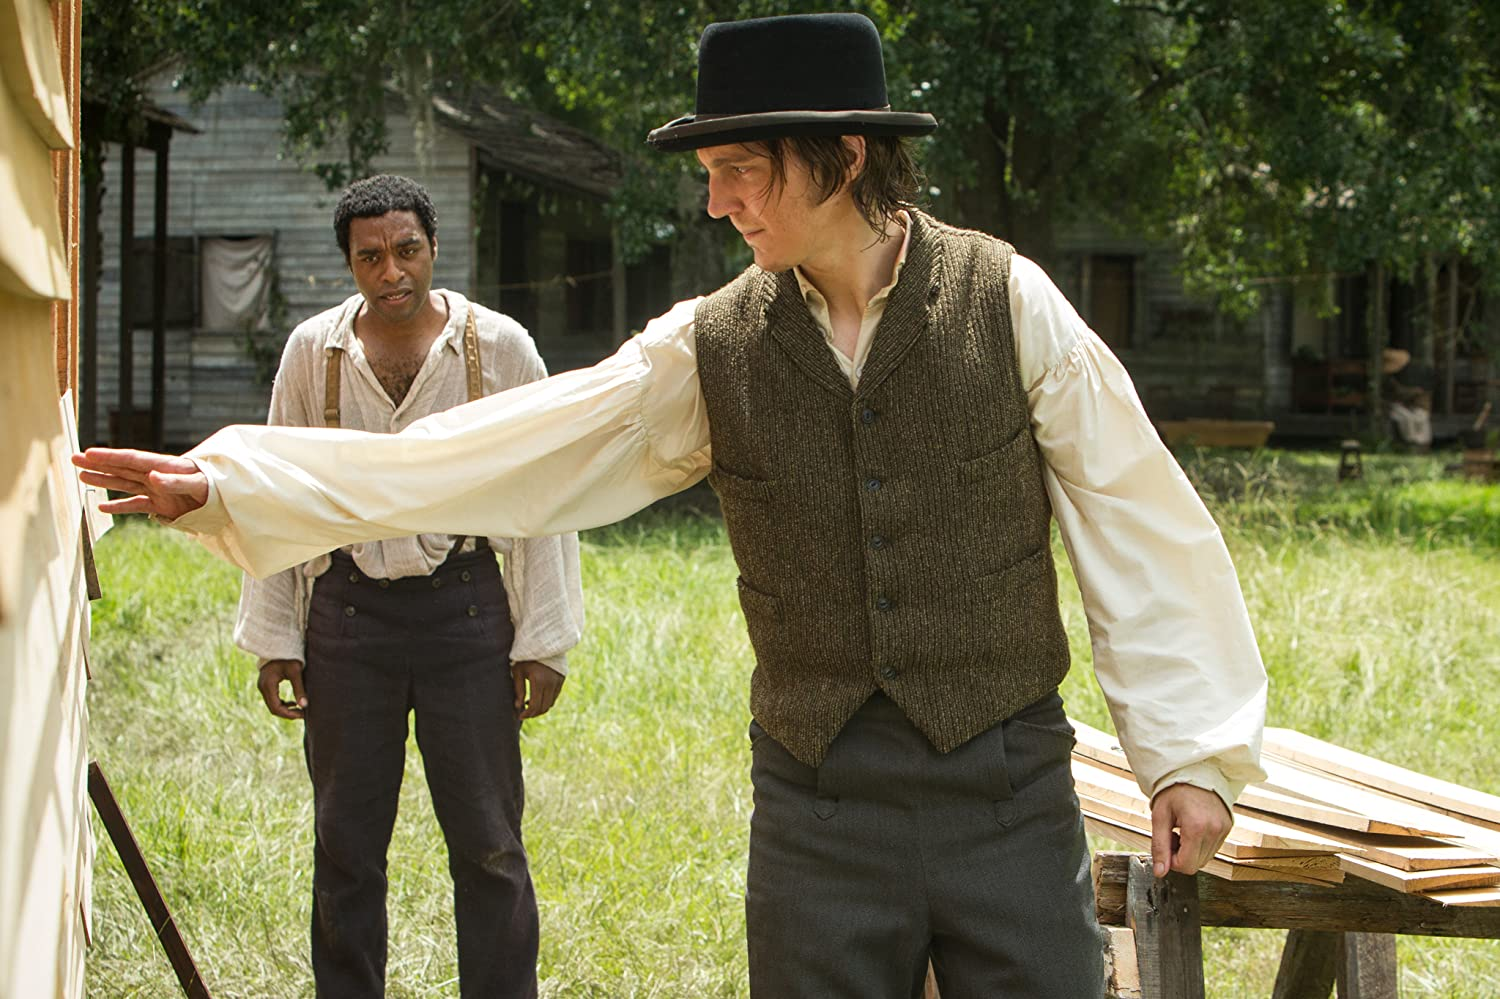 Paul Dano and Chiwetel Ejiofor in 12 Years a Slave (2013)